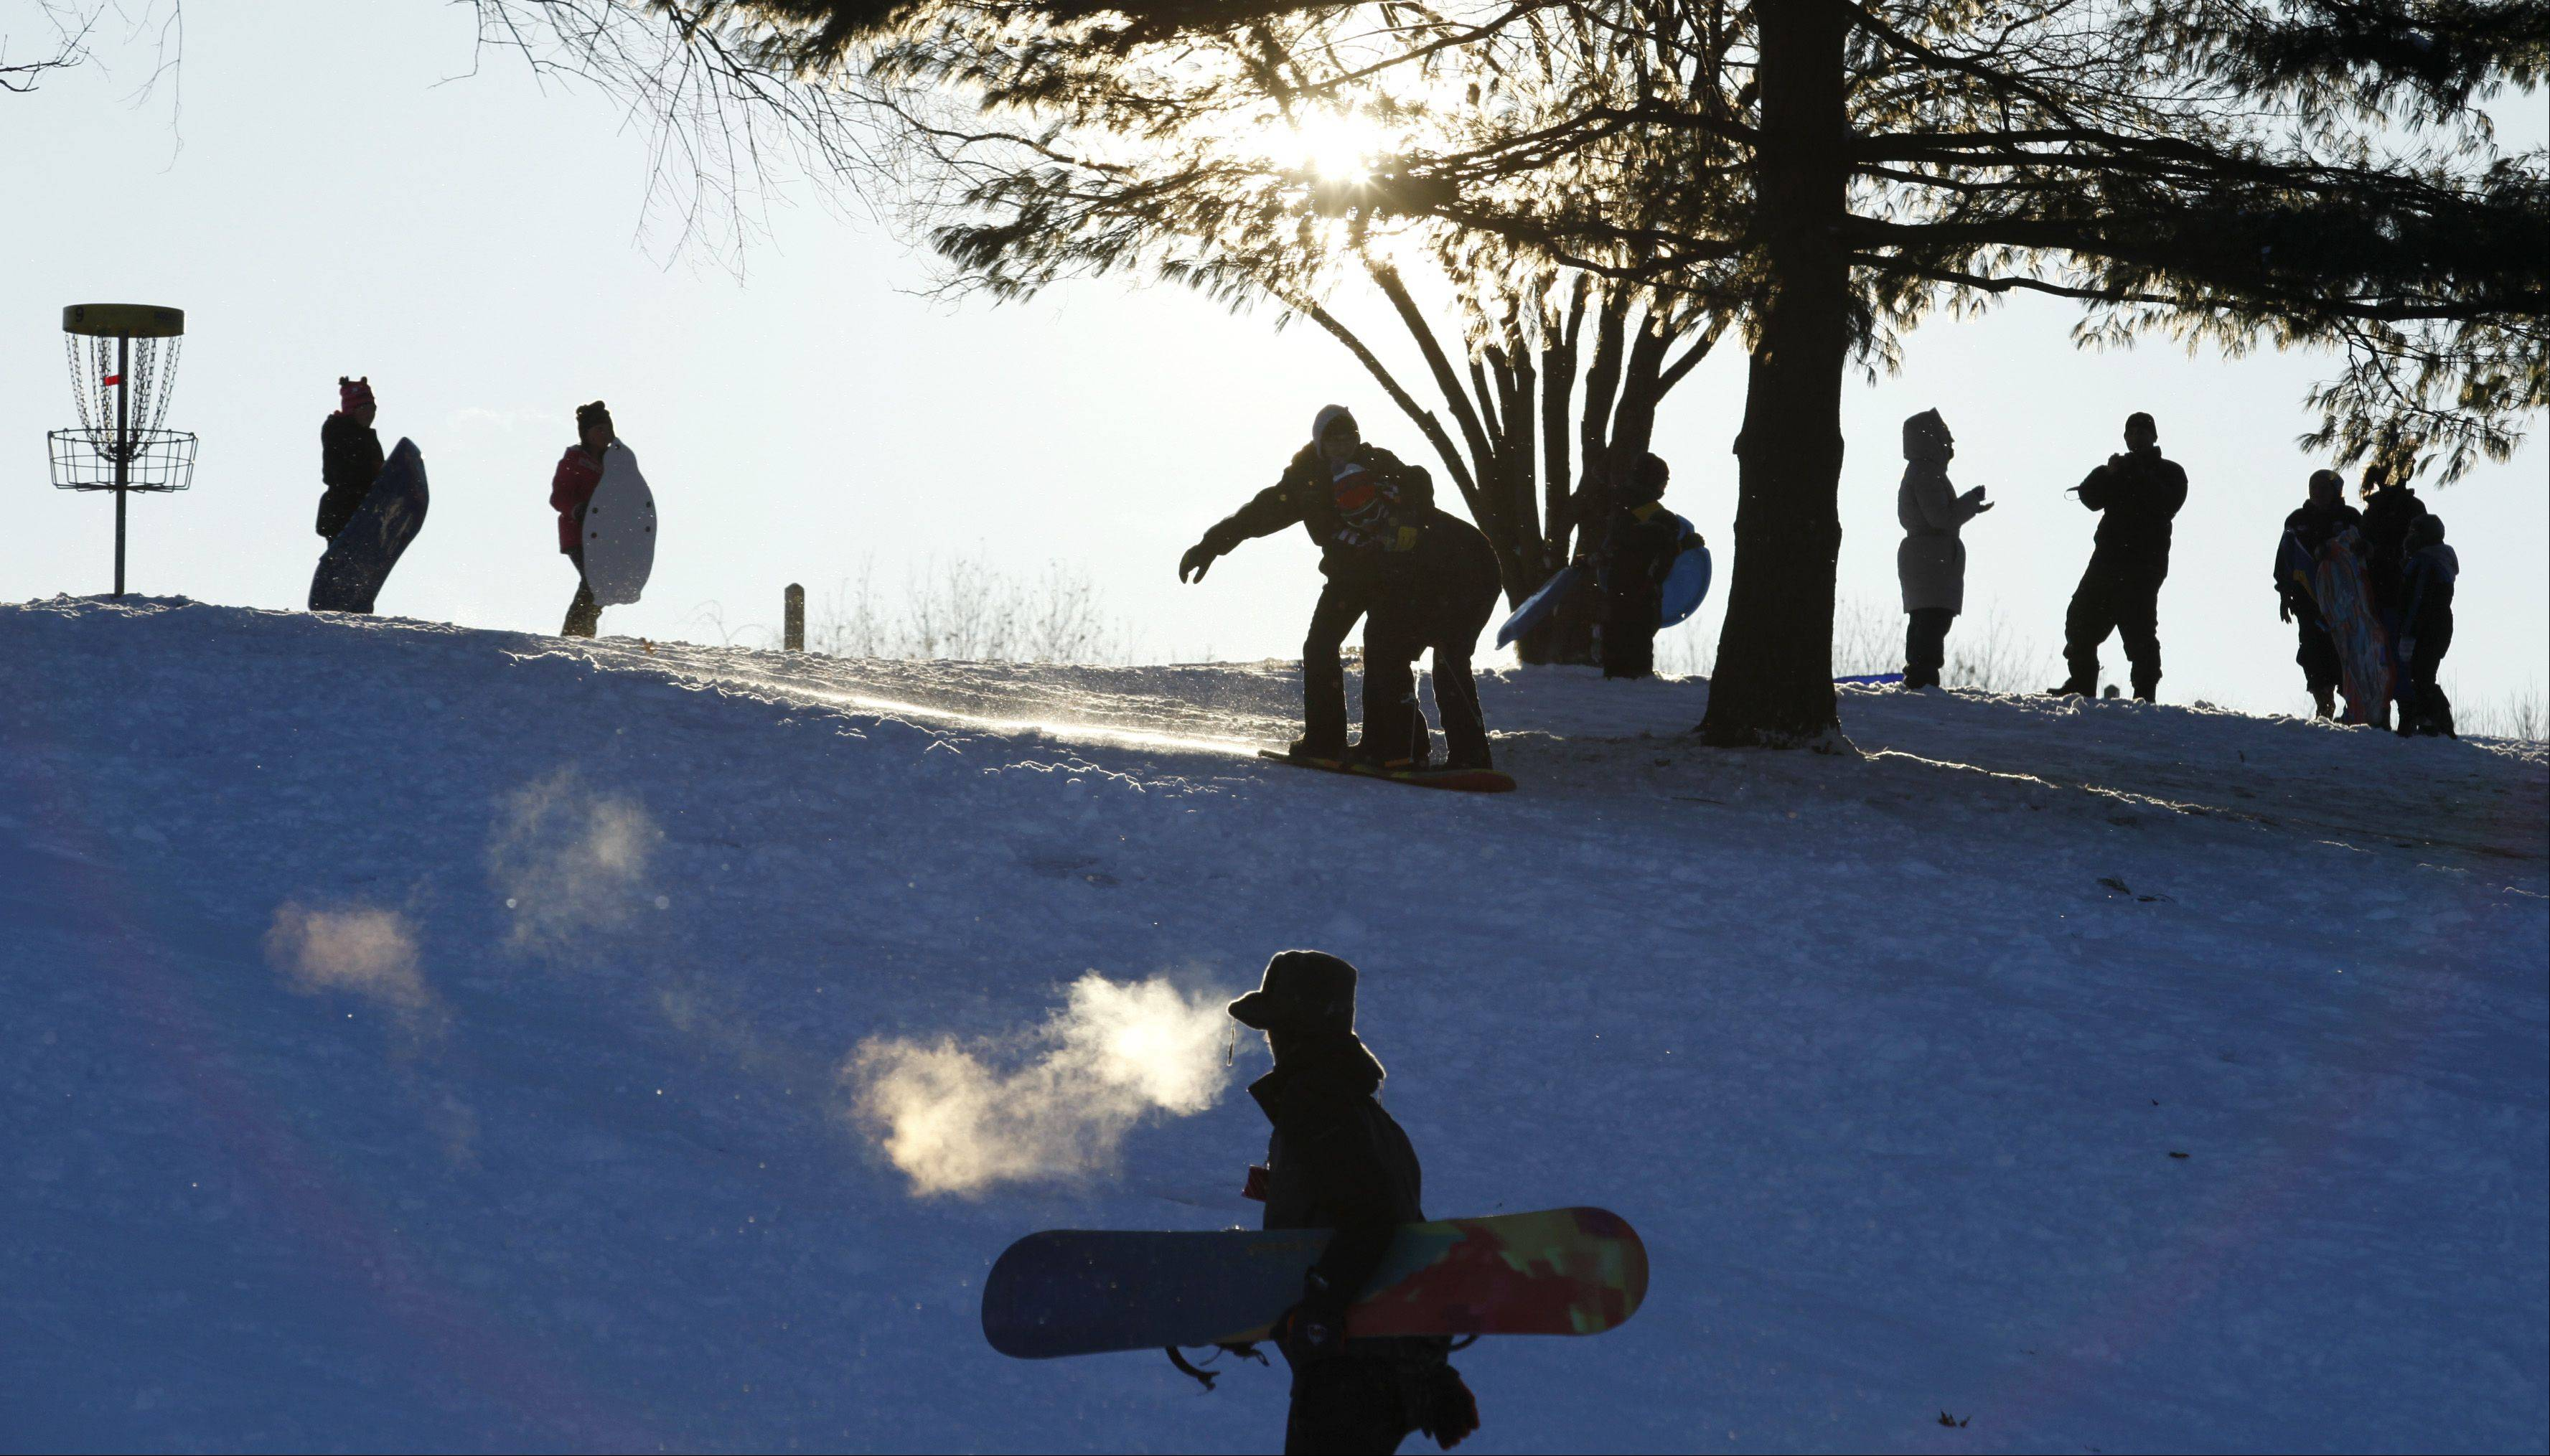 A snowboarder exhales into the frigid air as he hikes to the top of the hill Thursday afternoon at Randall Oaks Park in West Dundee. The popular sledding hill was packed with sledders, snowboarders and parents with cameras as the recent snowfall created a perfect chance to get out and play.